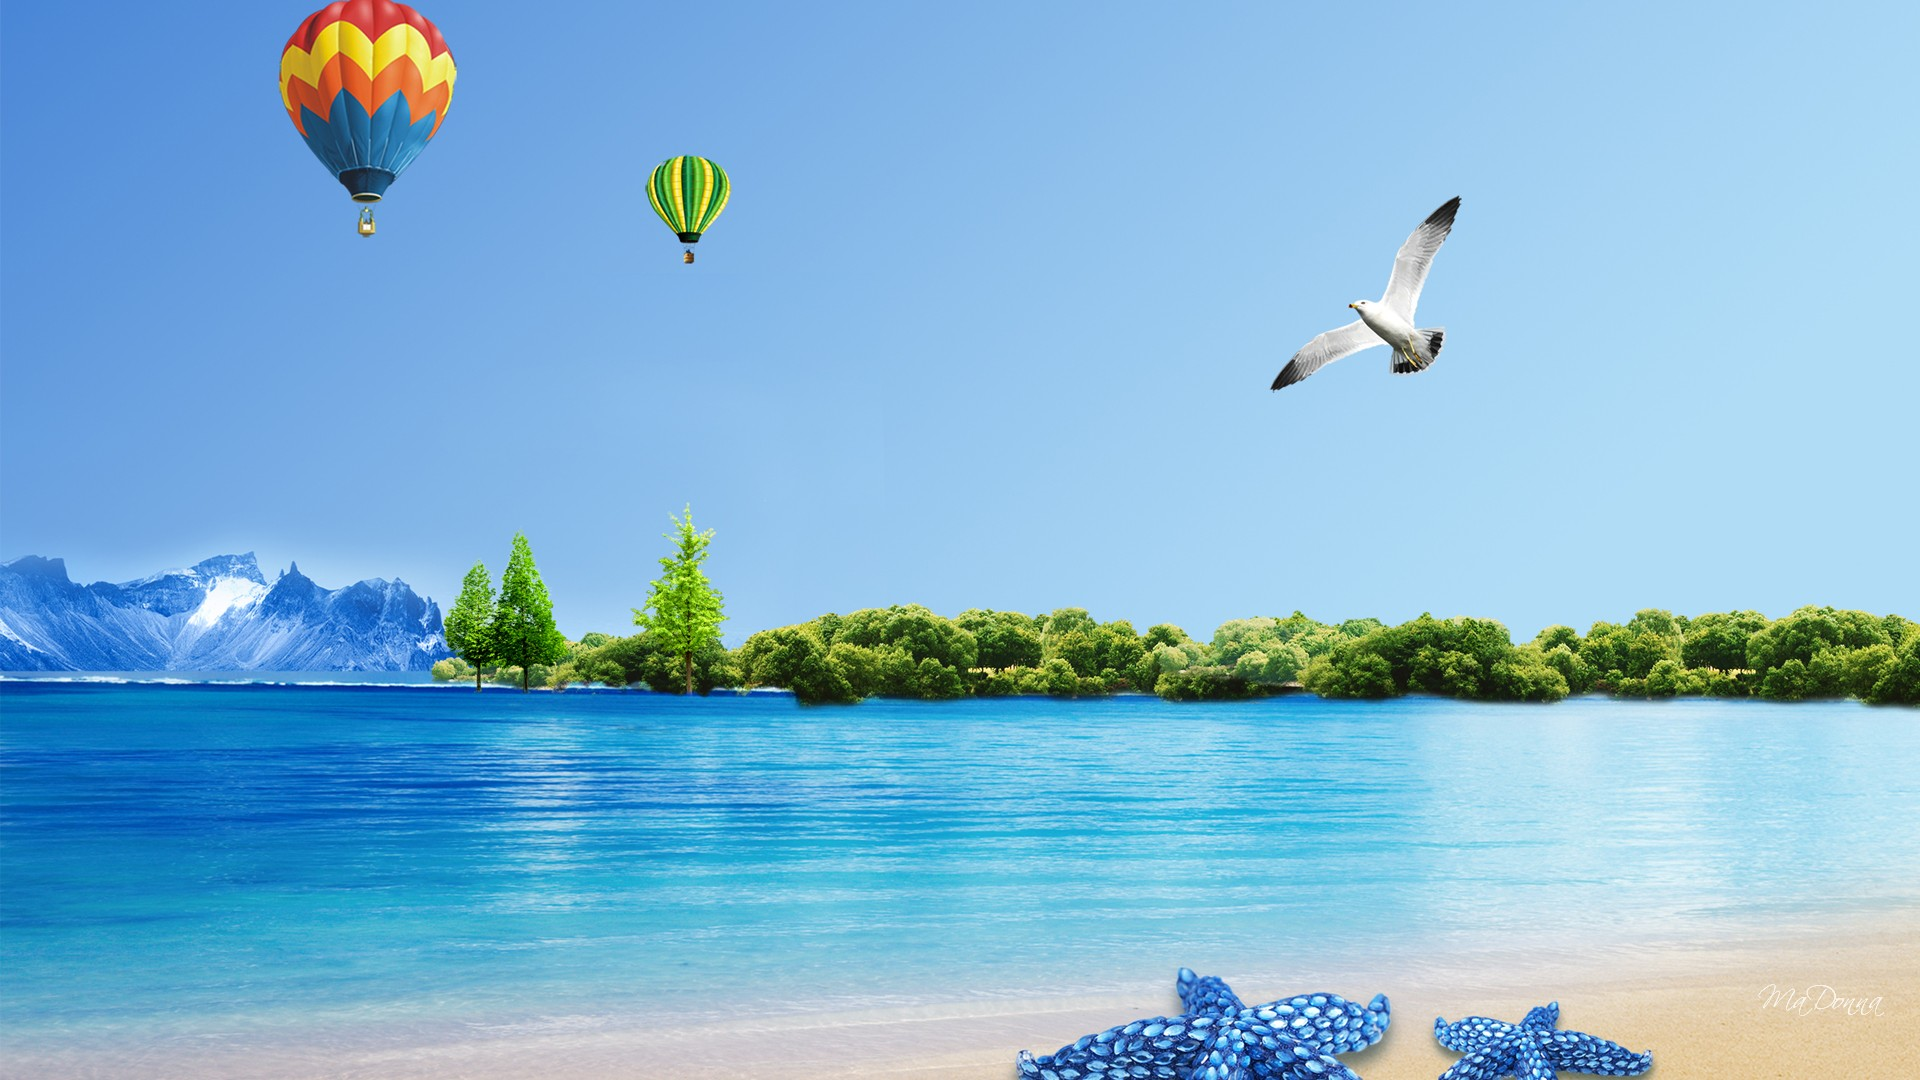 In summer hd wallpaper download cartoon wallpaper html code - Download Summer Backgrounds Wallpaper Pictures In High Definition Or